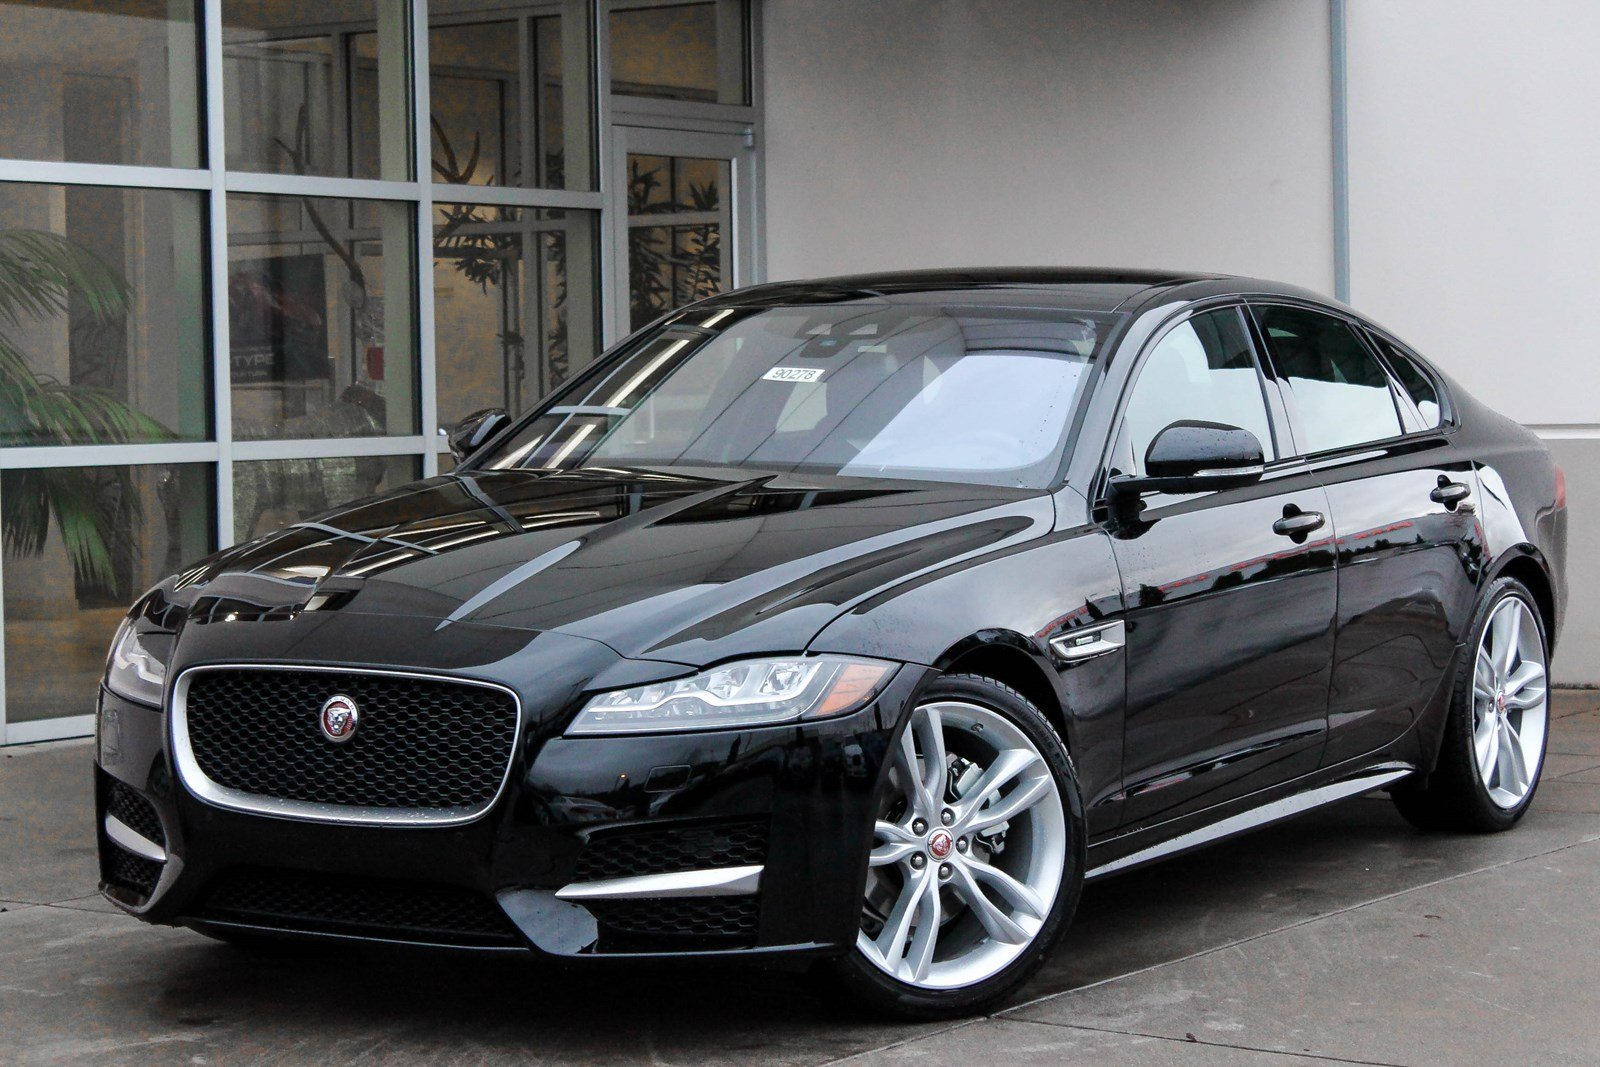 Jaguar Bellevue Jaguar Used Car Dealer In Bellevue Wa